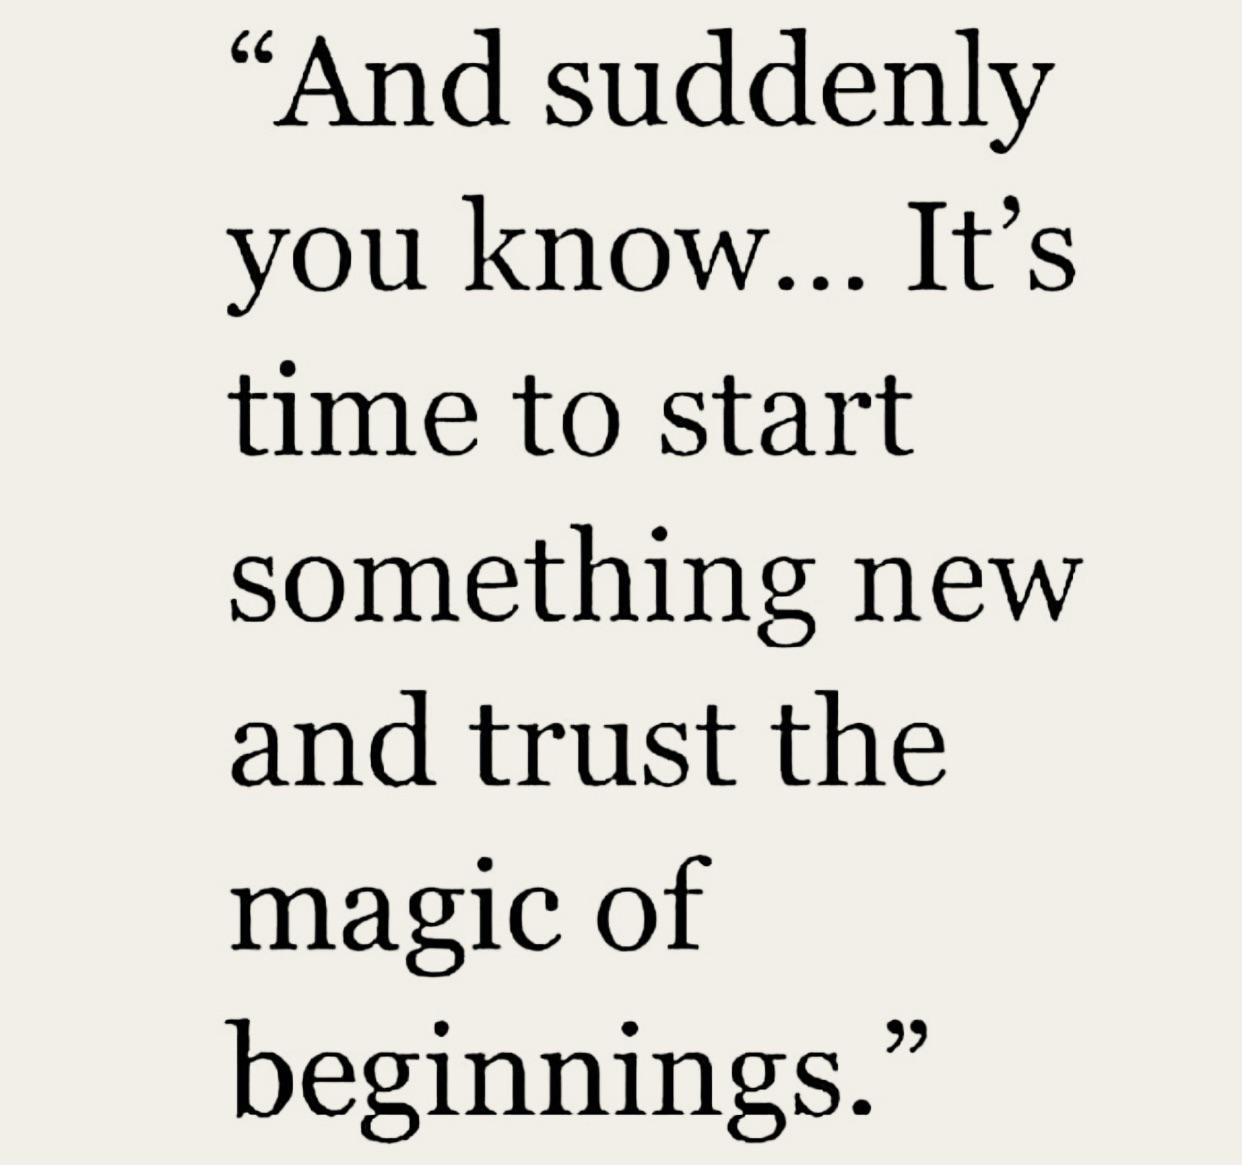 [Image] Trust the magic of new beginnings.